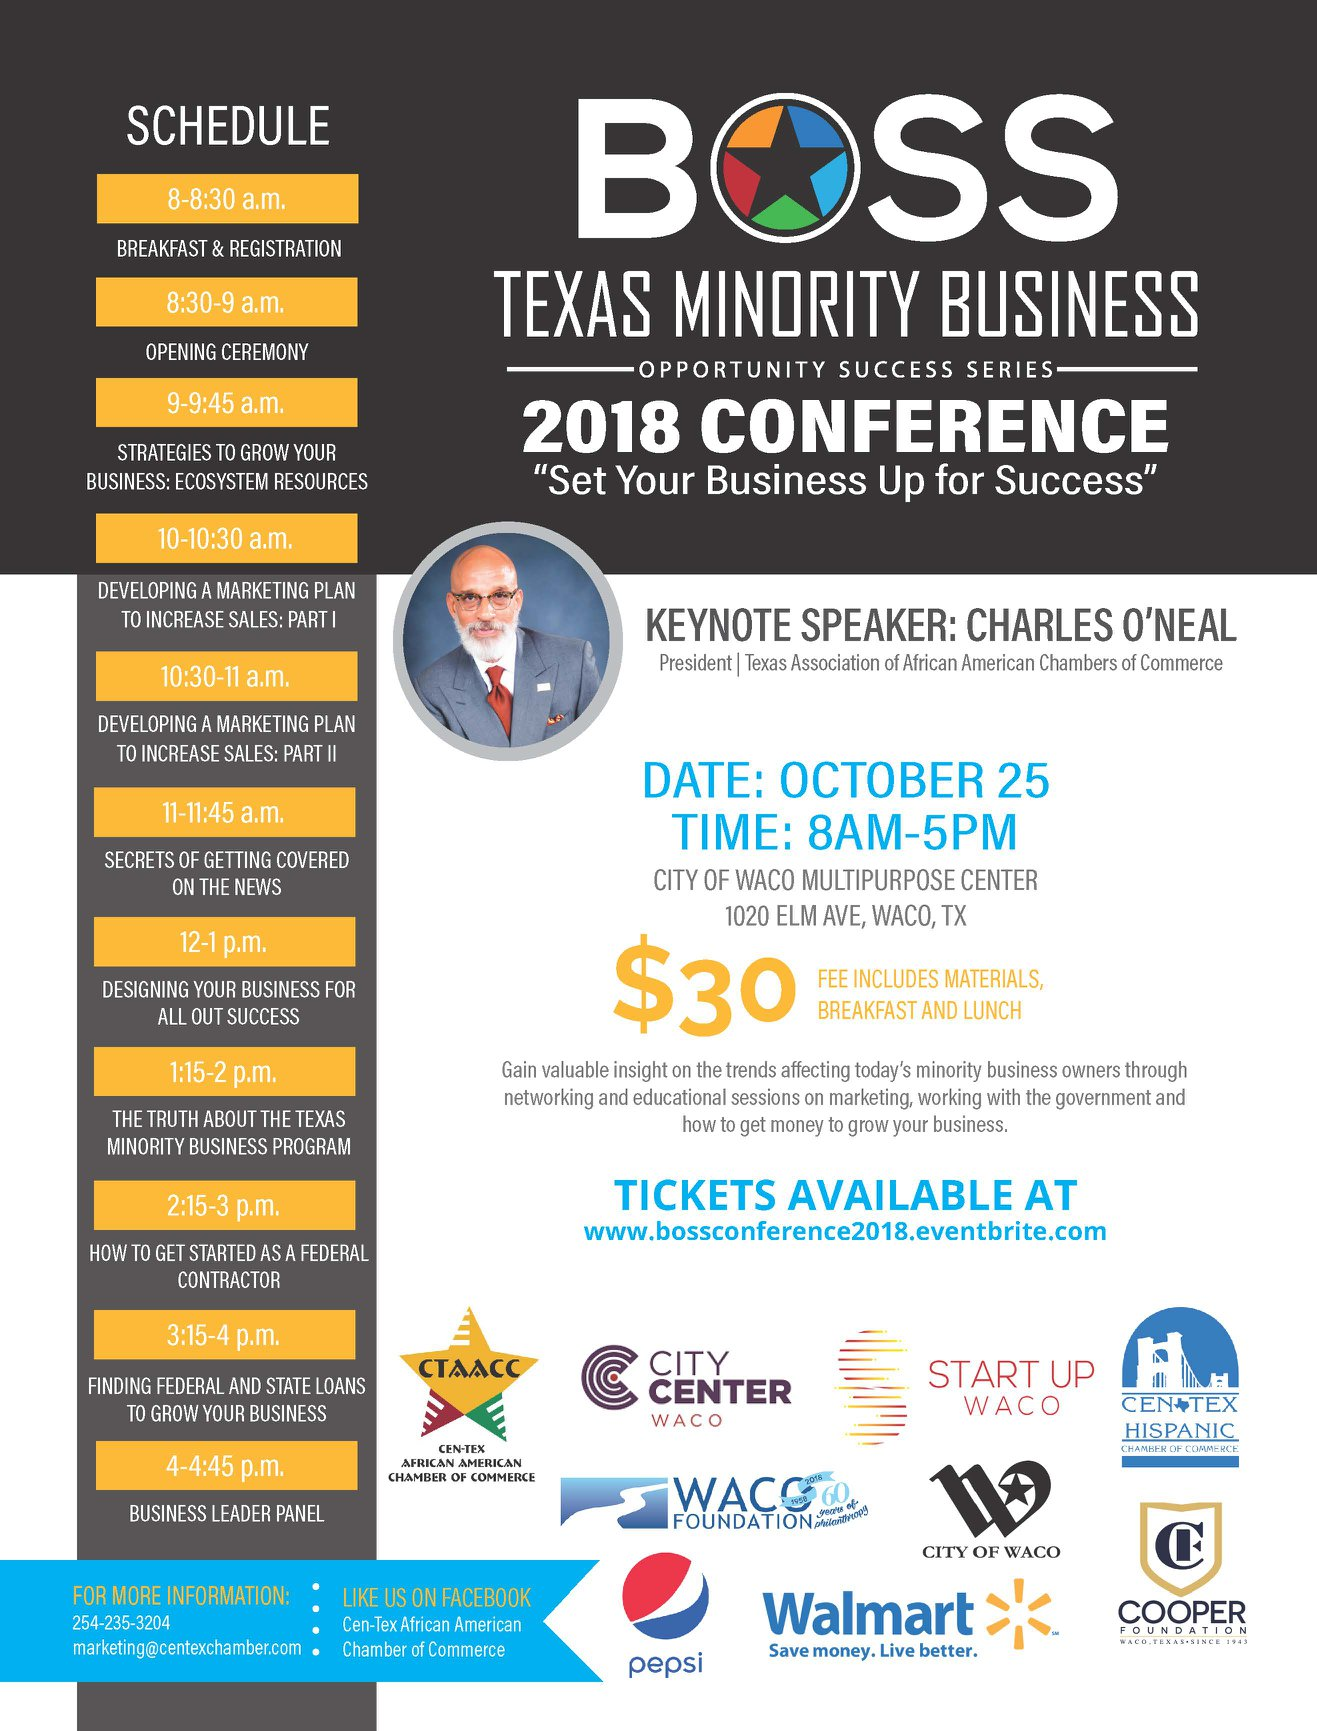 2018 BOSS Conference